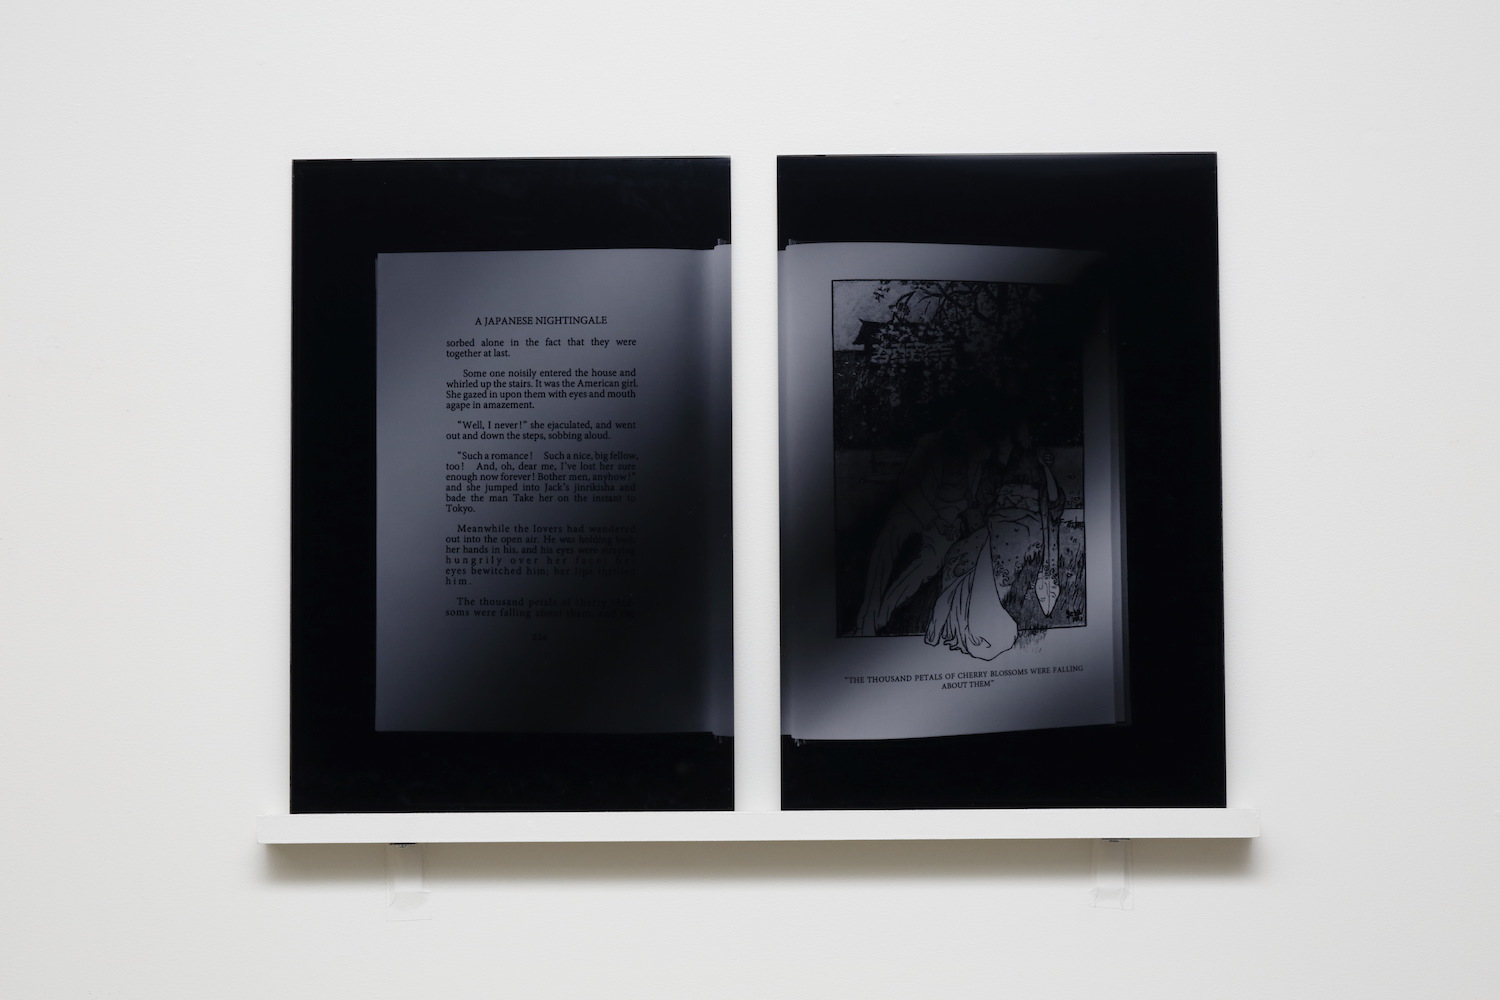 A Japanese Nightingale, 2017, digital C-print, mounted on acrylic, 35.6 x 23.8 cm each (image), diptych, edition of 5 + 2 A.P.